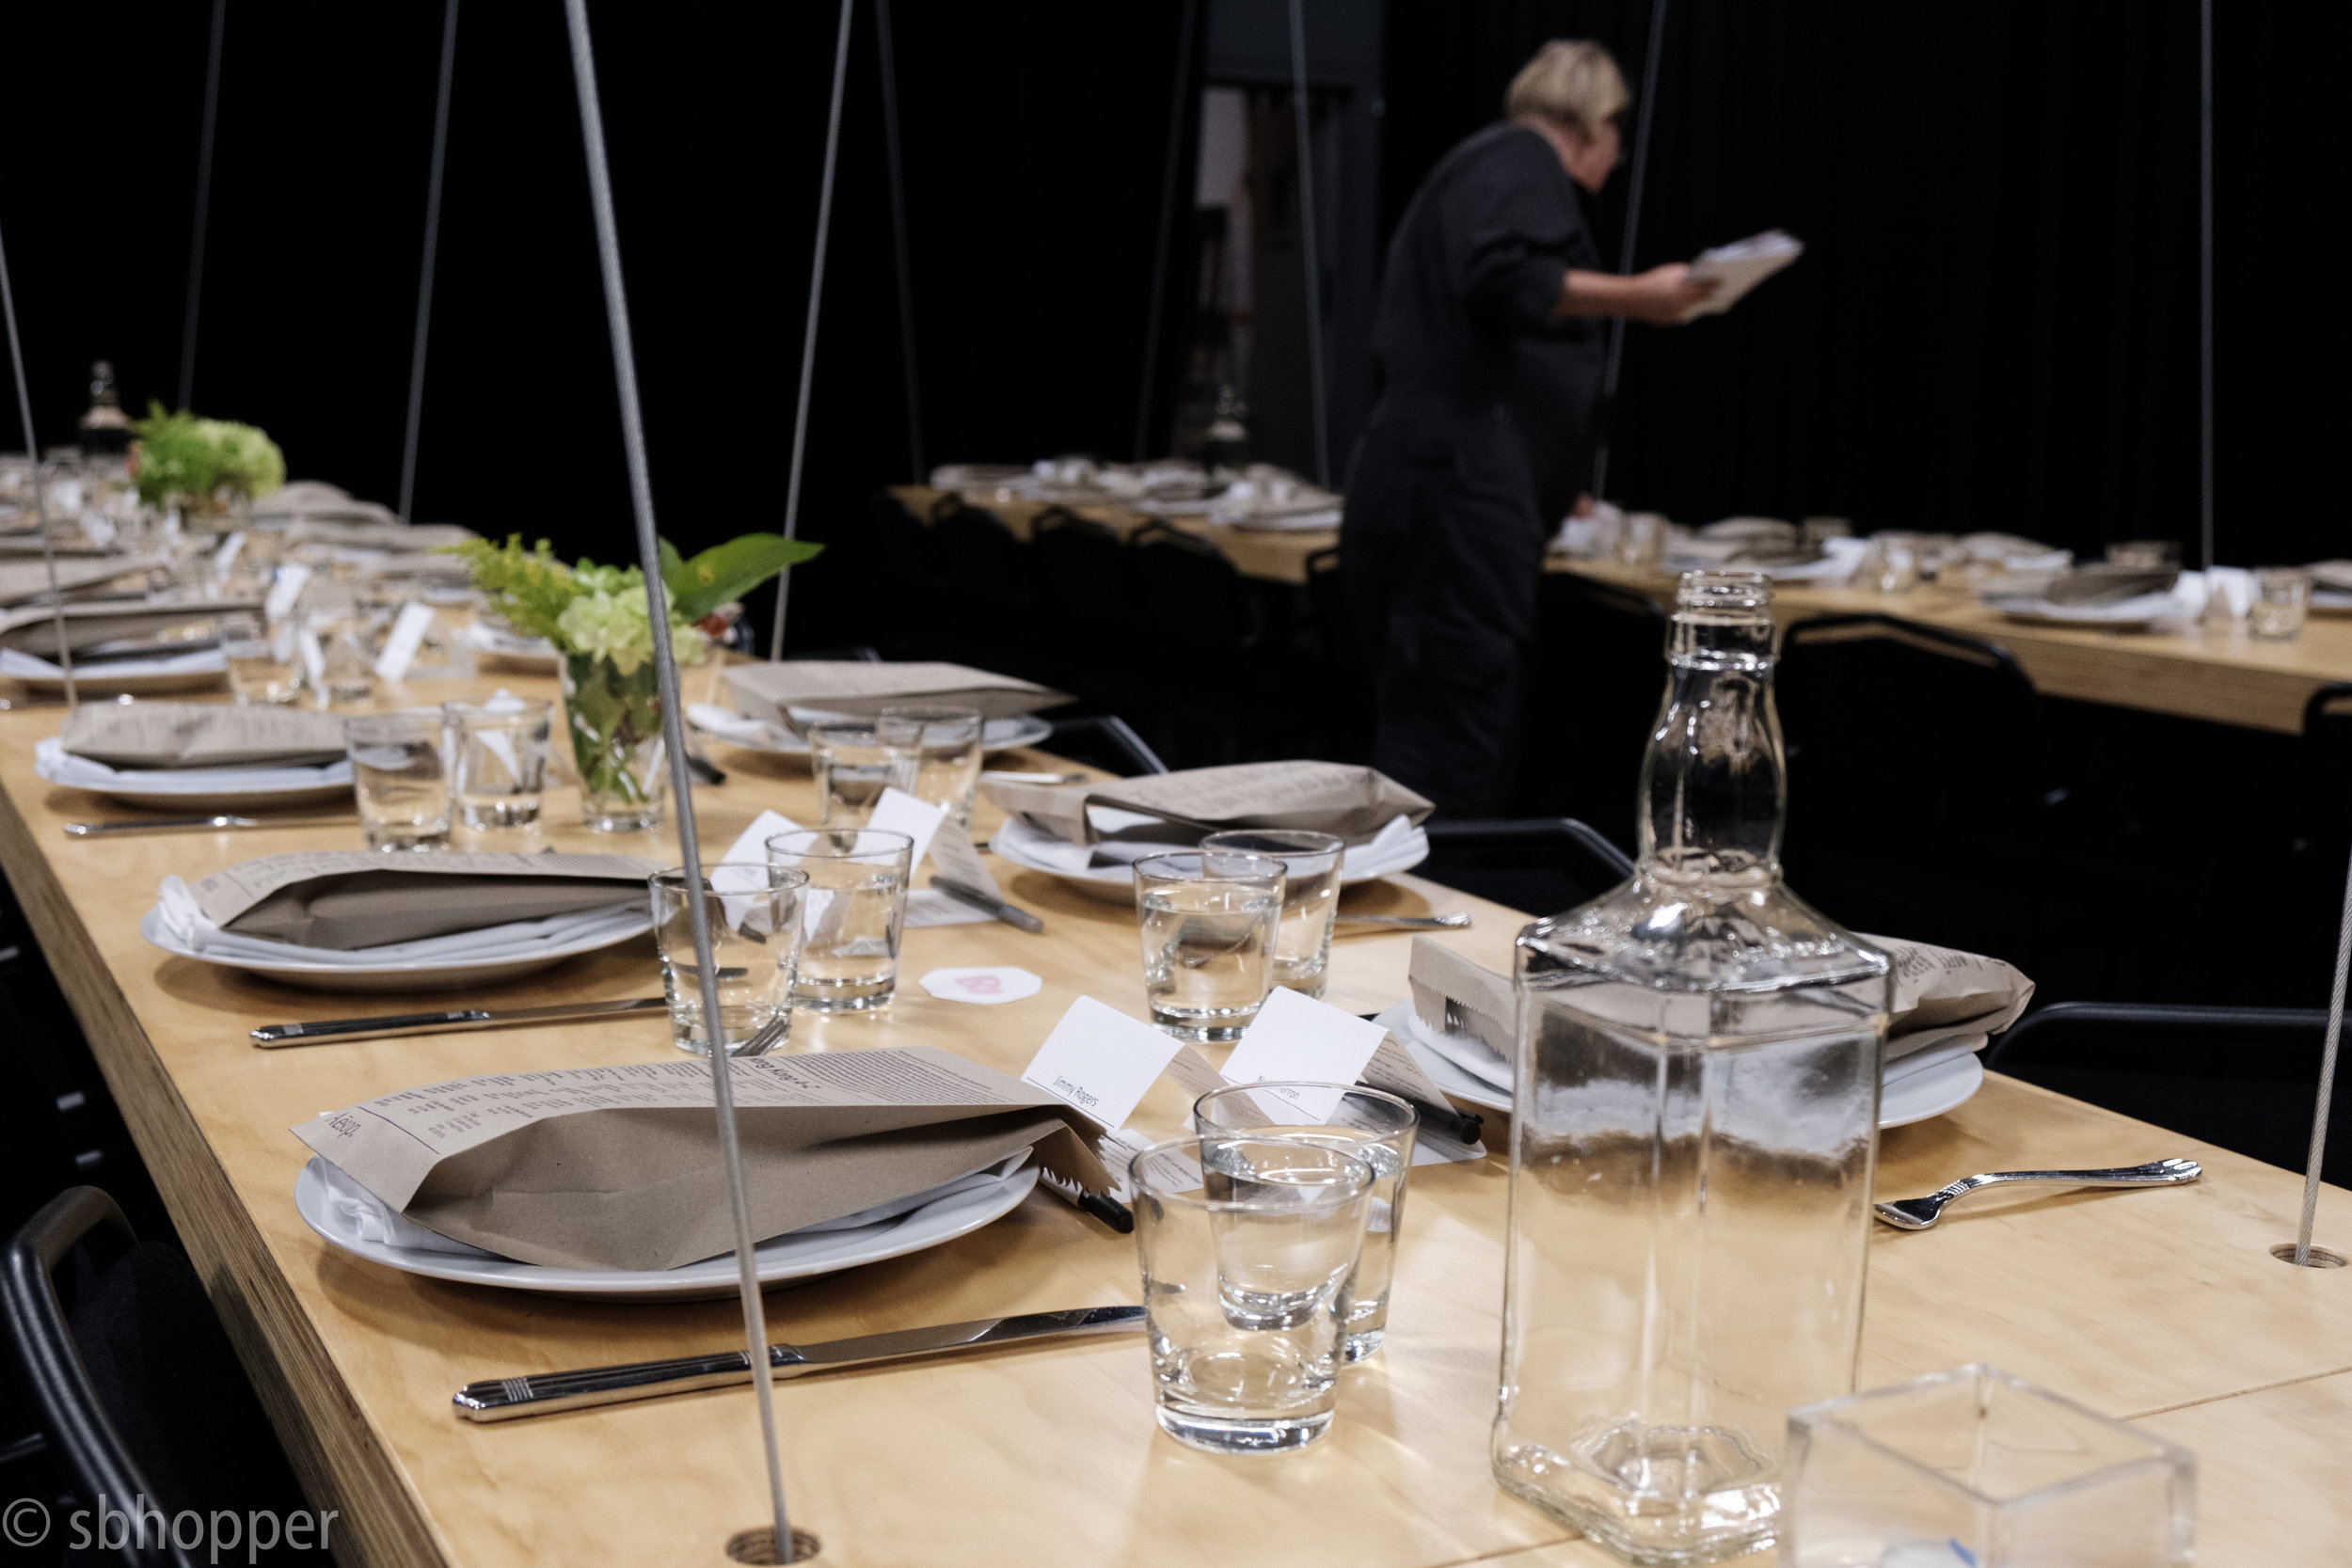 Final Preparations, On the Boards Studio Supper 28 September 2017.